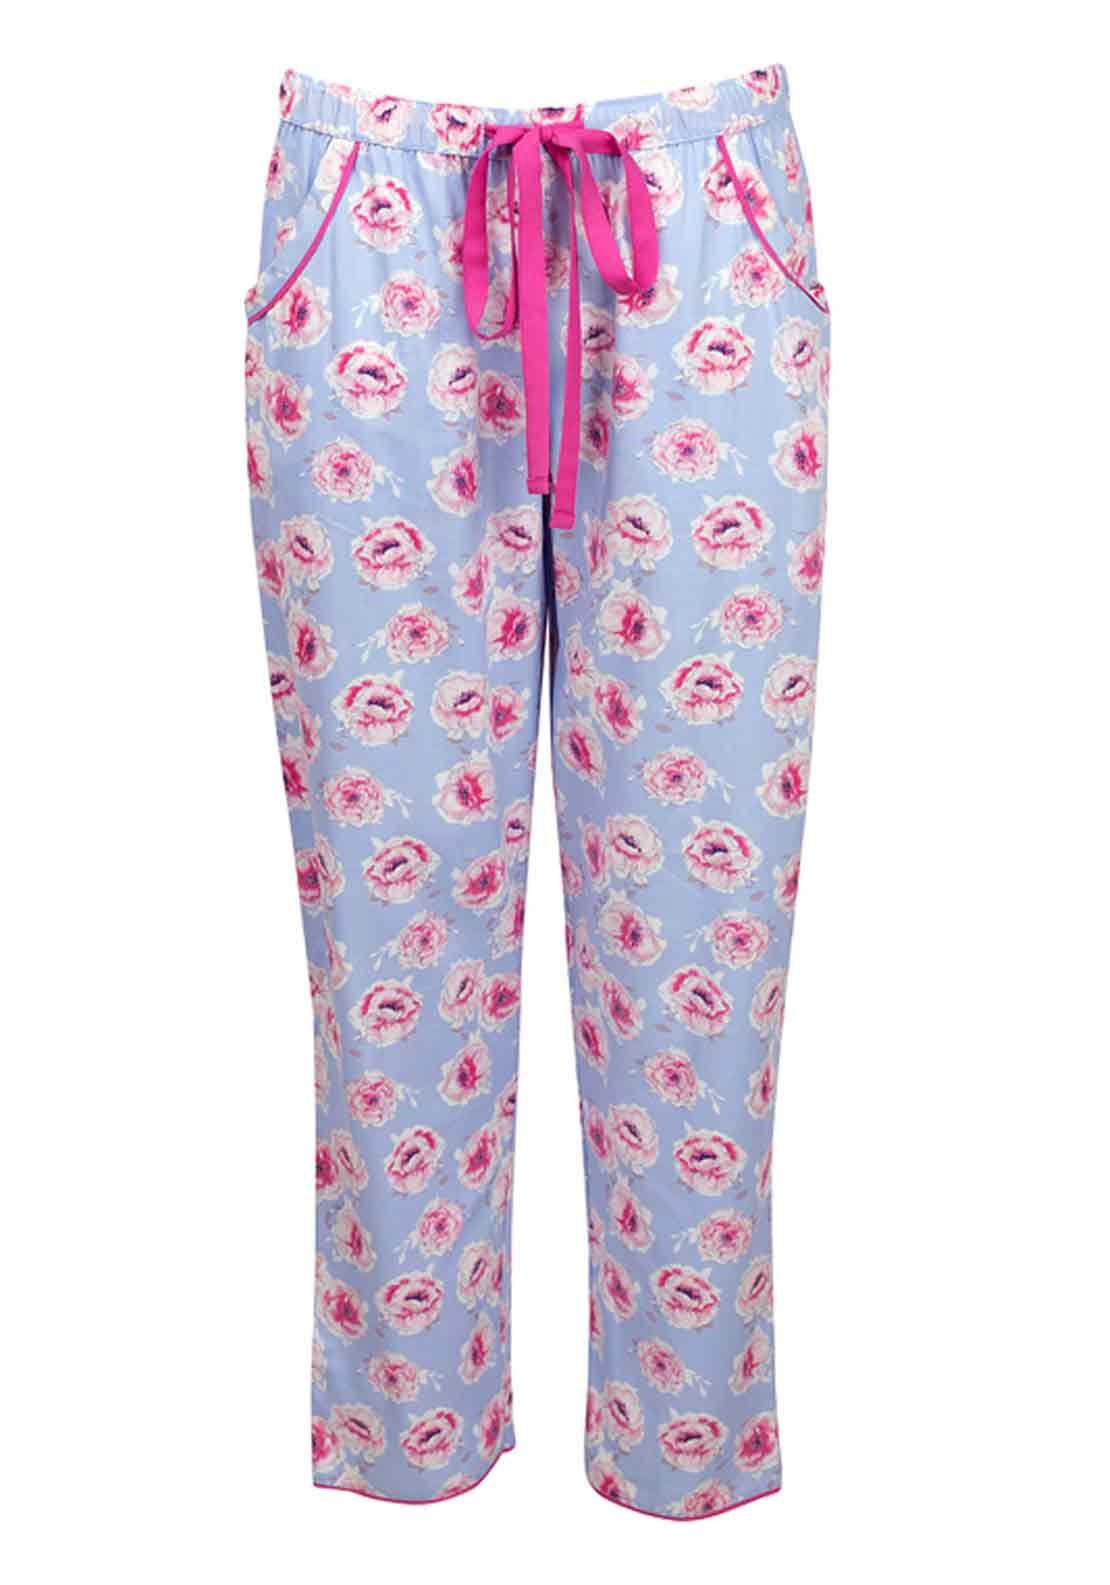 Cyberjammies Floral Fun Floral Print Pyjama Bottoms, Blue Floral